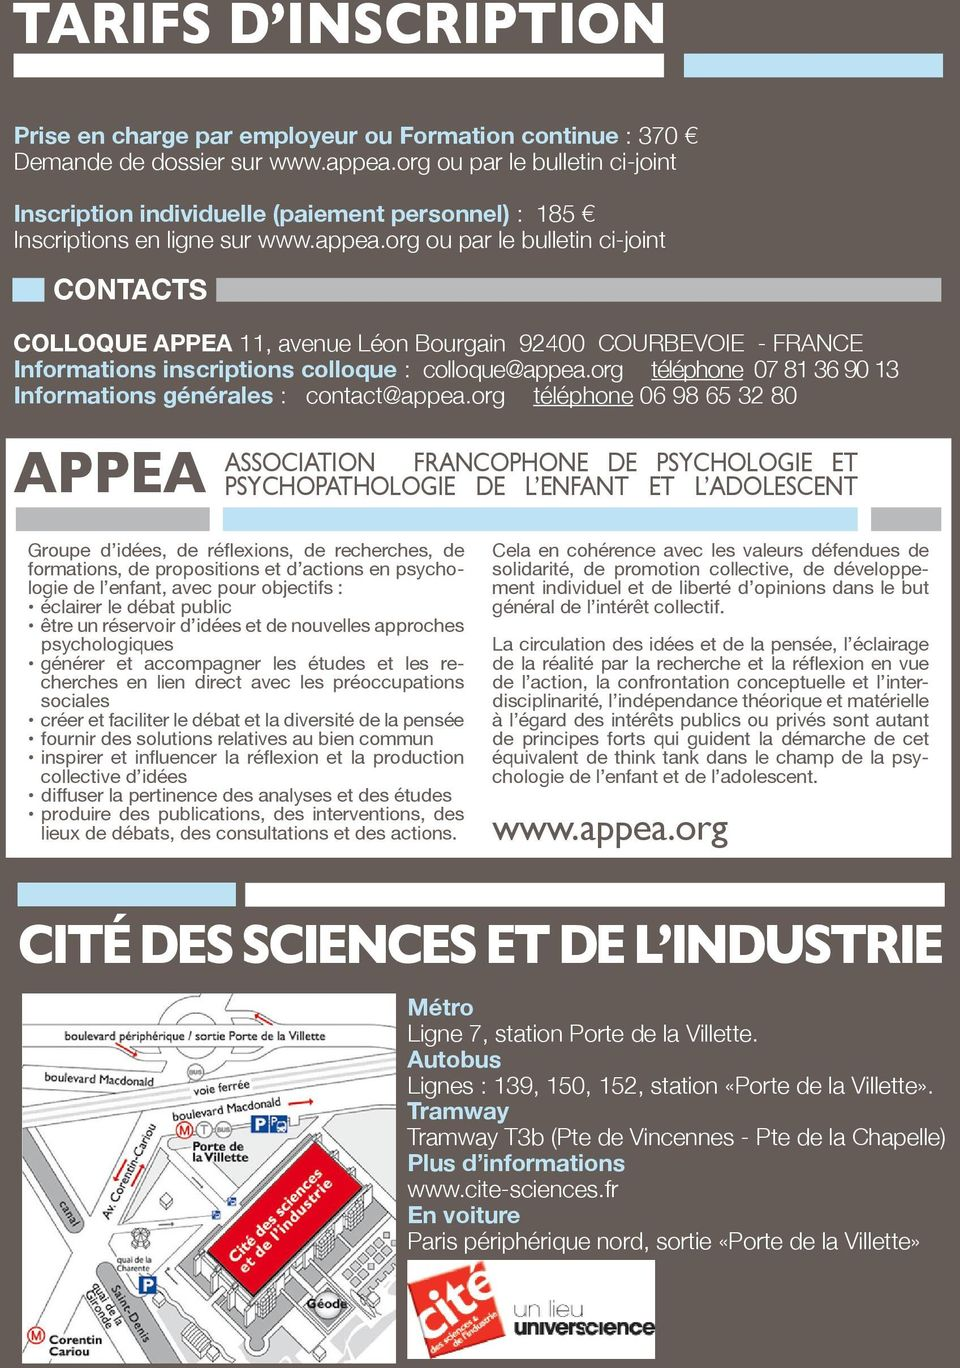 org ou par le bulletin ci-joint CONTACTS COLLOQUE APPEA 11, avenue Léon Bourgain 92400 COURBEVOIE - FRANCE Informations inscriptions colloque : colloque@appea.